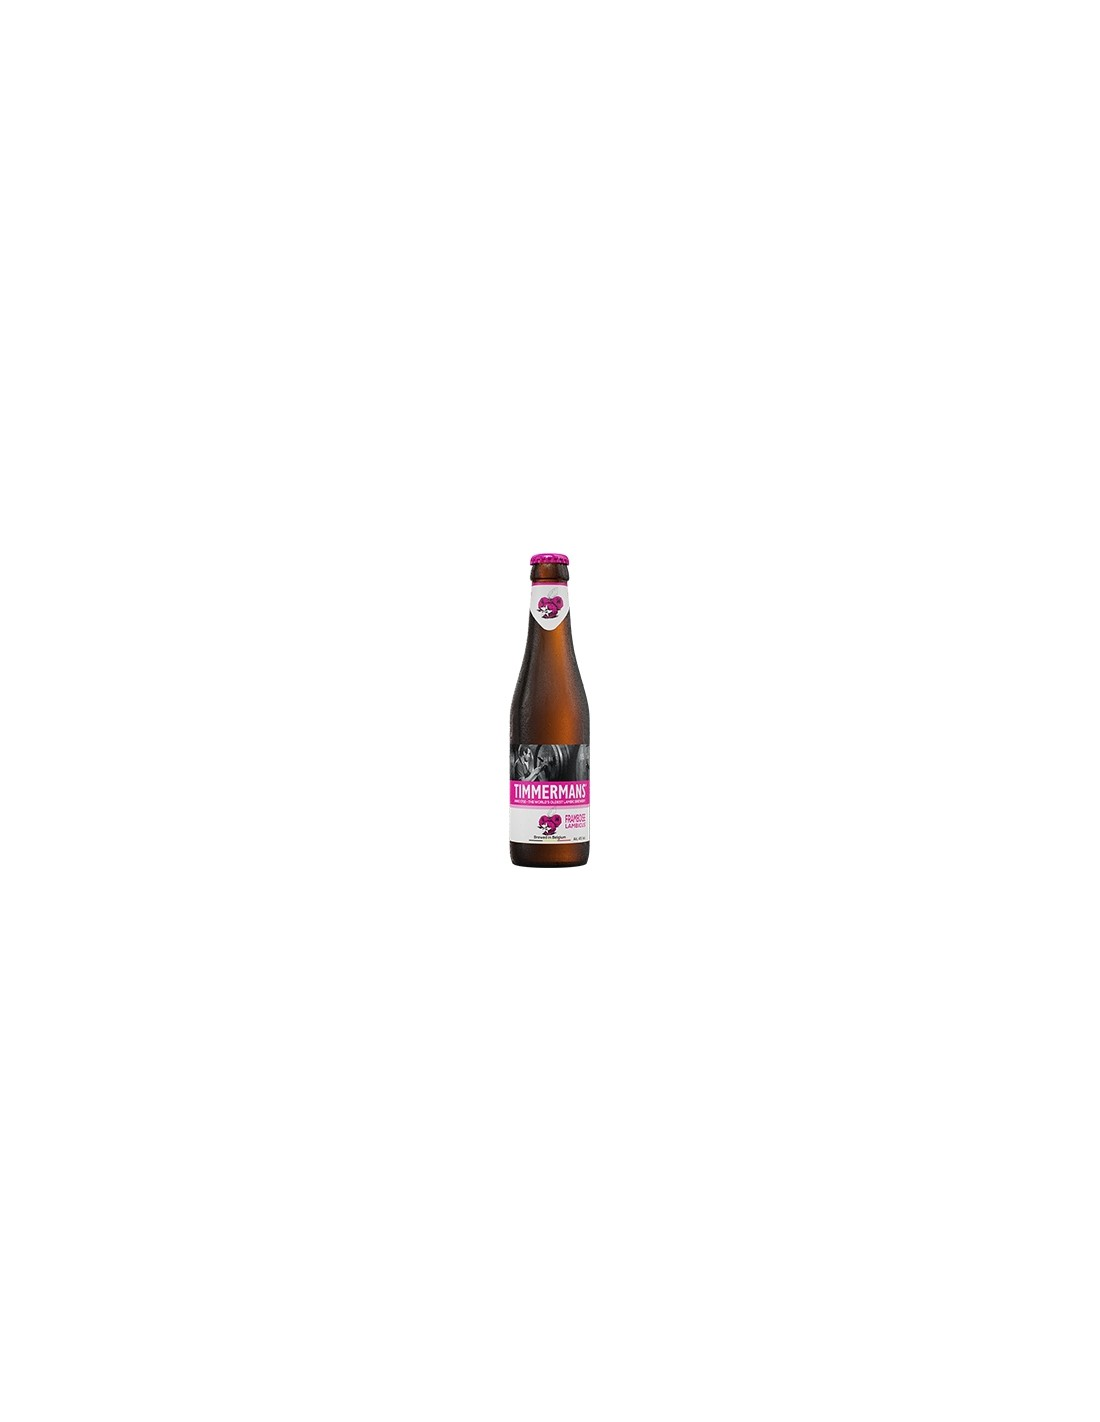 Bere Timmermans Framboise Lambicus 0.25L